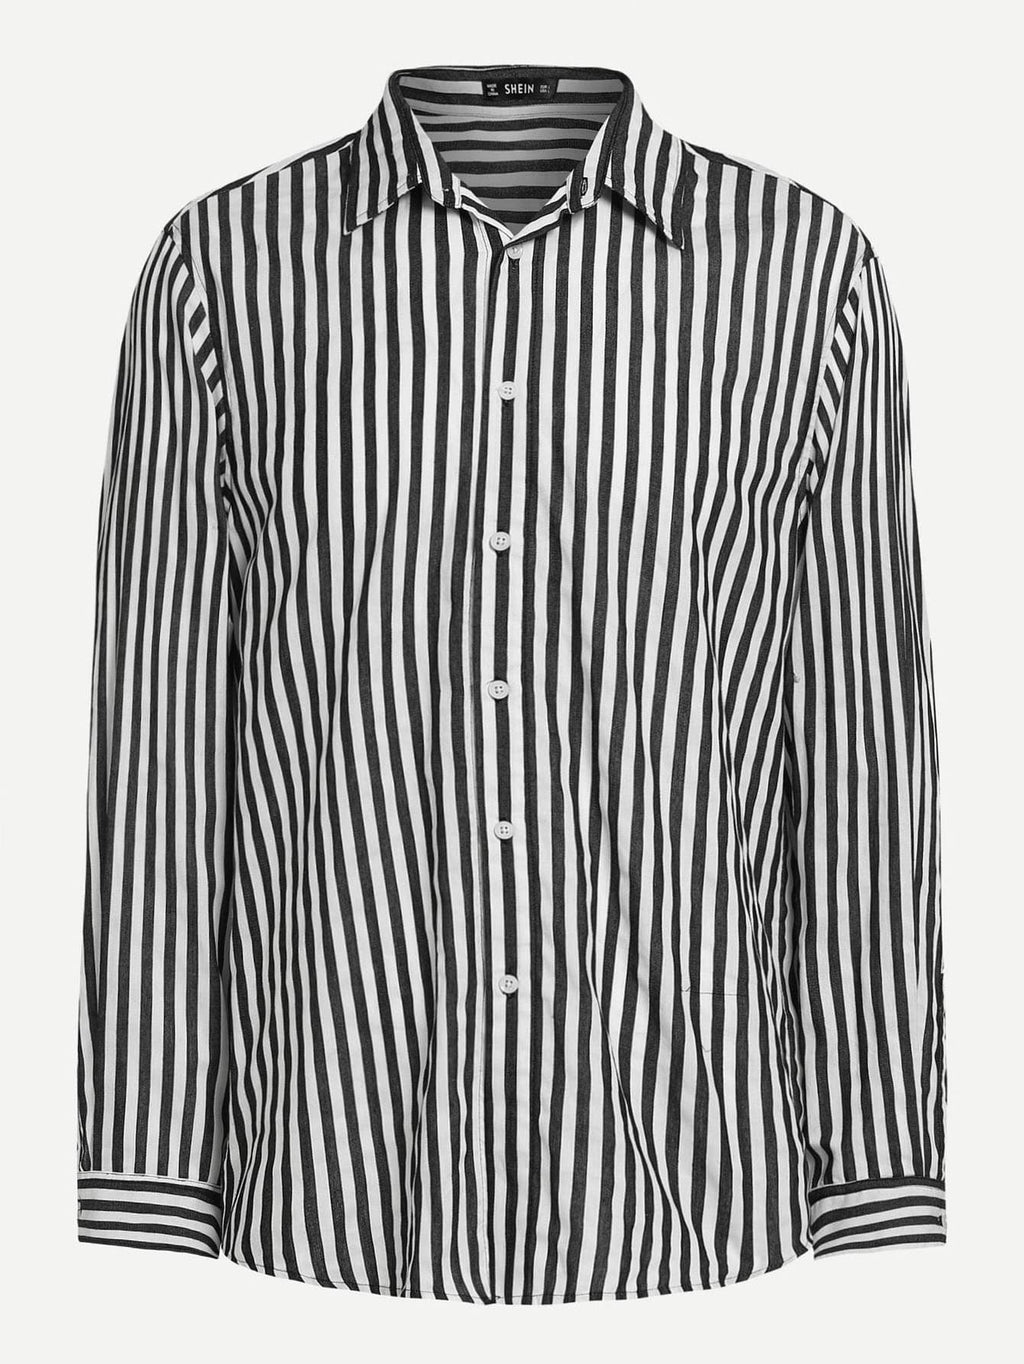 Men's Formal Shirts - Vertical Striped Print Shirt